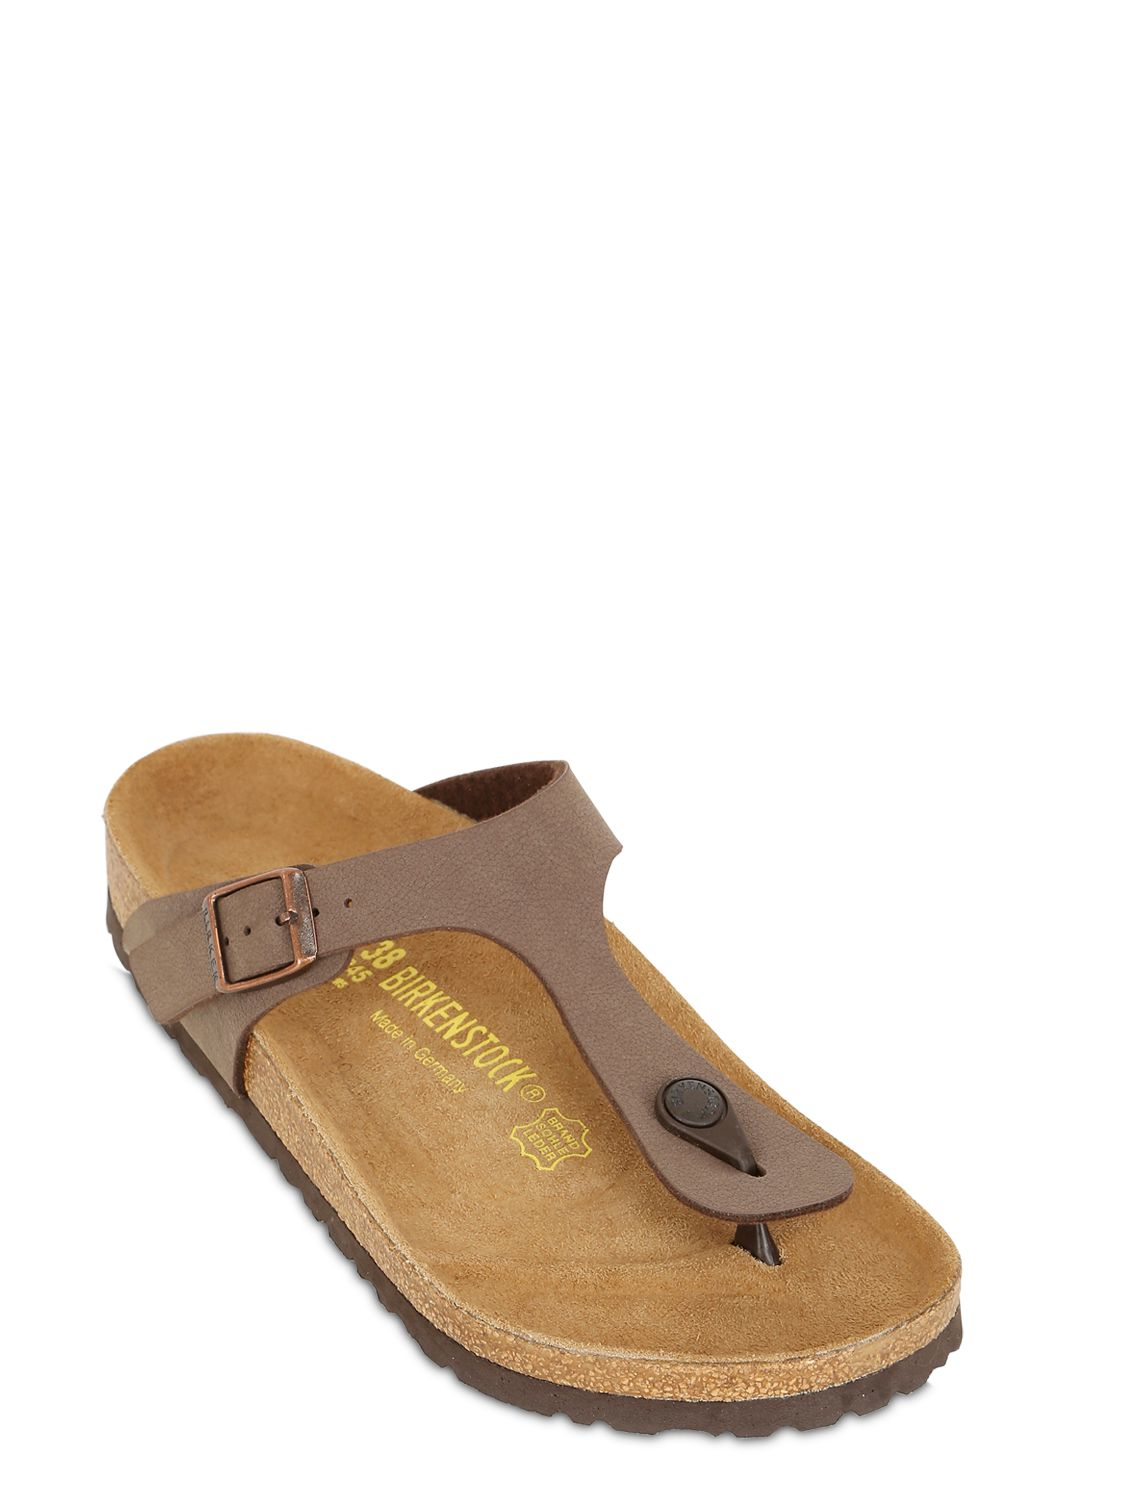 4a43ab181d9e Lyst - Birkenstock Gizeh Nubuck Thong Sandals in Brown for Men